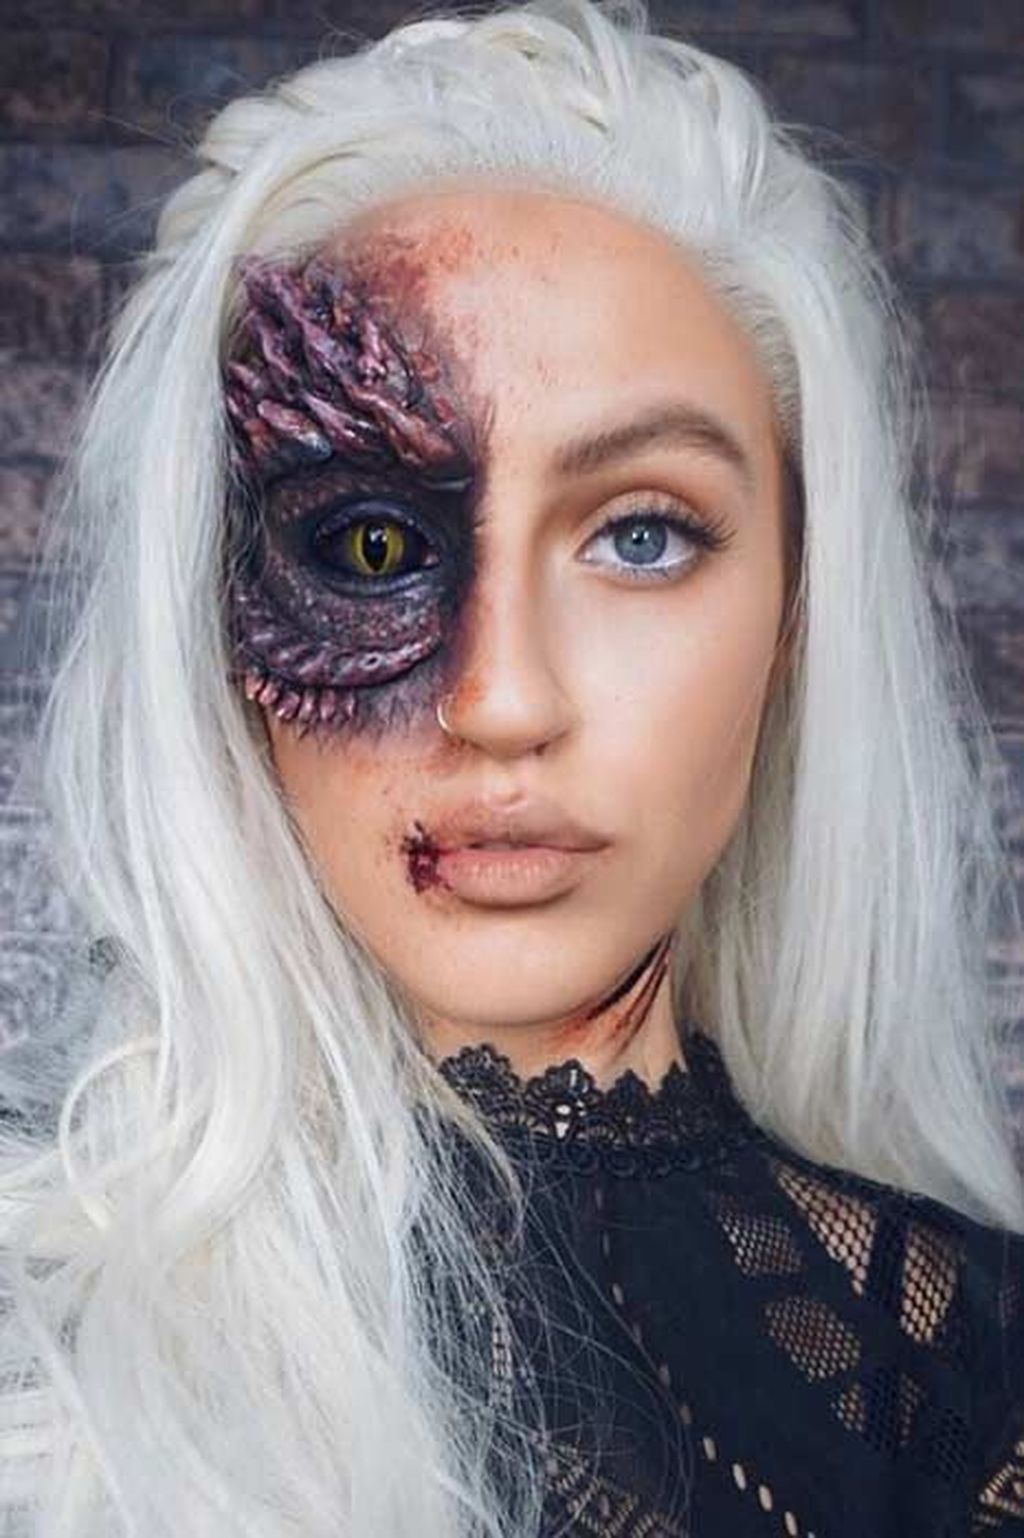 The Best Scary Halloween Costumes.32 The Best Scary Halloween Costume Ideas For Women Halloween Makeup Pretty Cool Halloween Makeup Halloween Makeup Scary